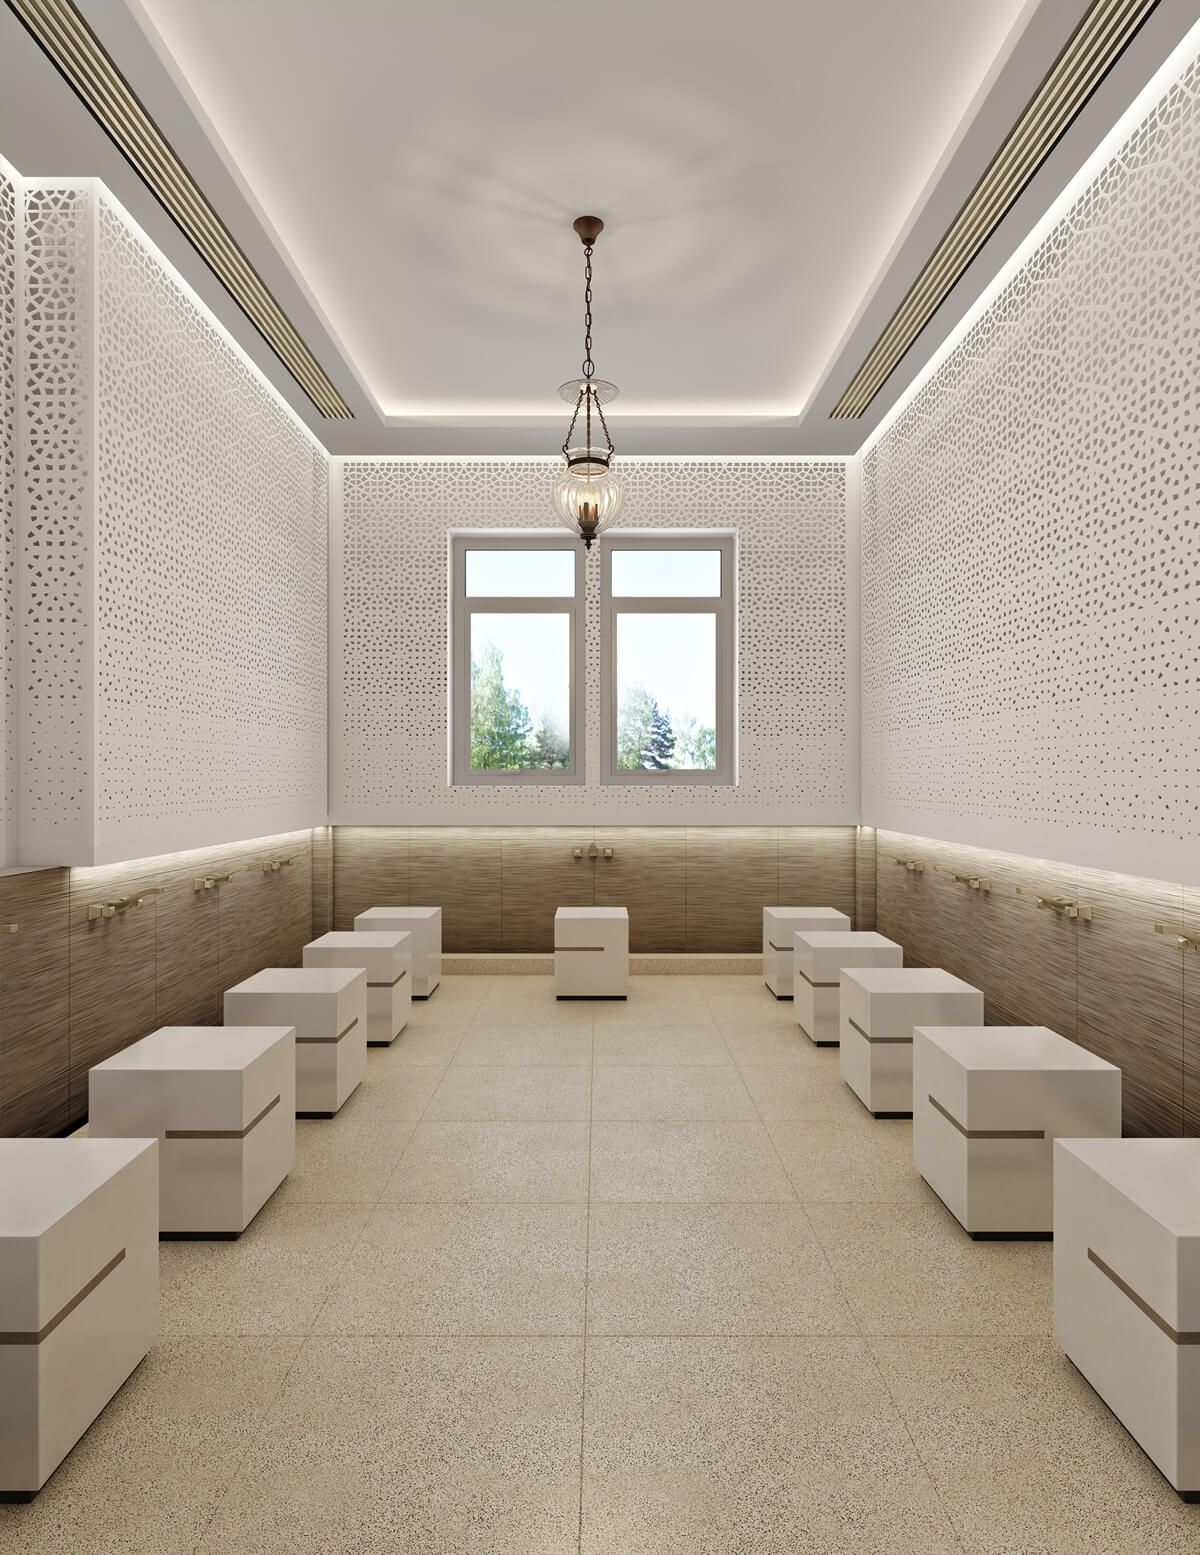 Leicester Modern Islamic Mosque Interior Design 17 A Seamless Combination Of Traditional Mosque Design Islamic Architecture Mosque Design Mosque Architecture